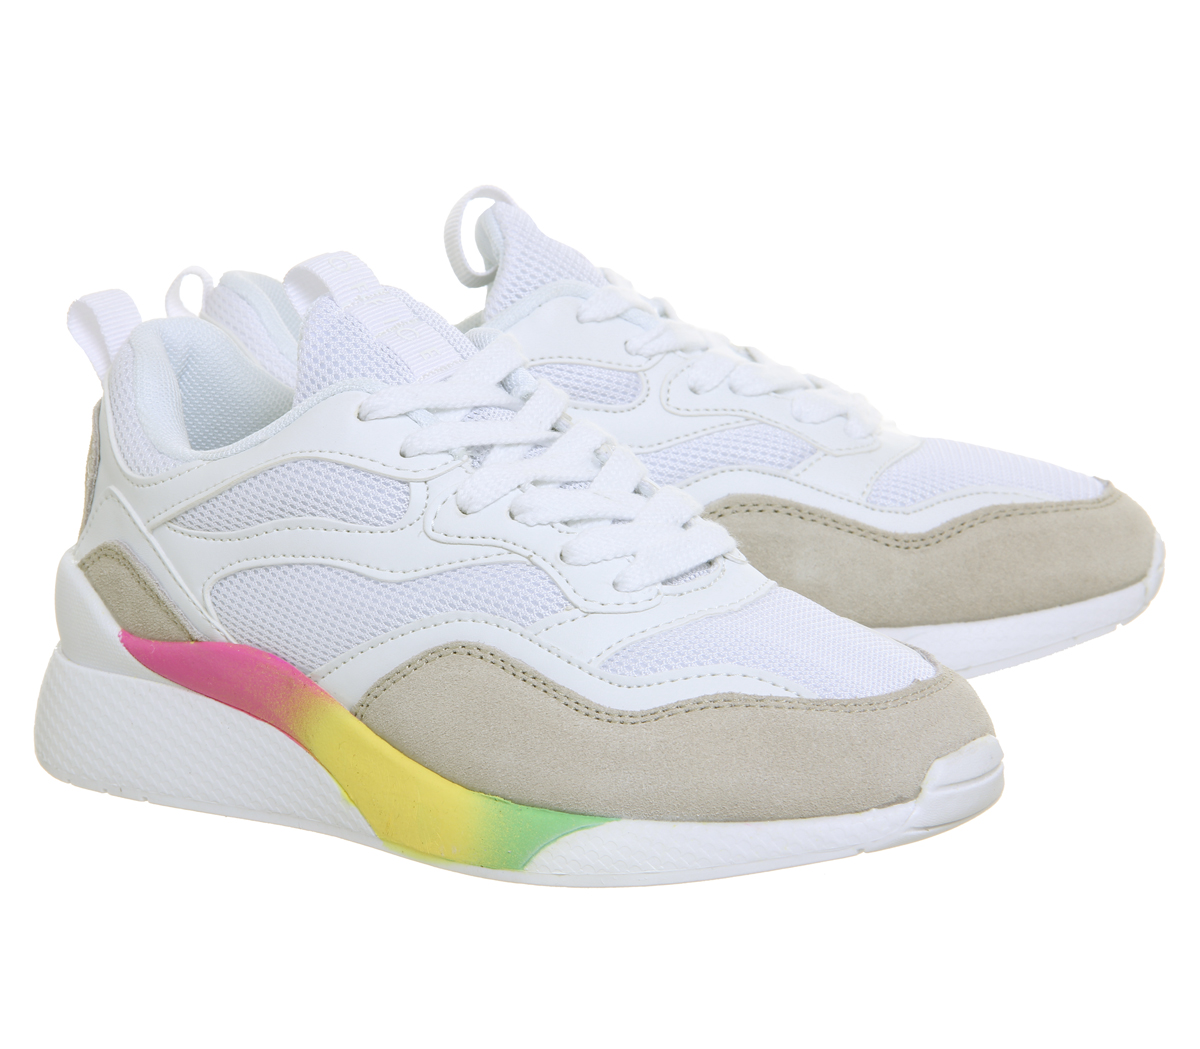 dabde94a6fea2 Womens Office Fife Chunky Lace Up Trainers WHITE WITH RAINBOW SOLE ...